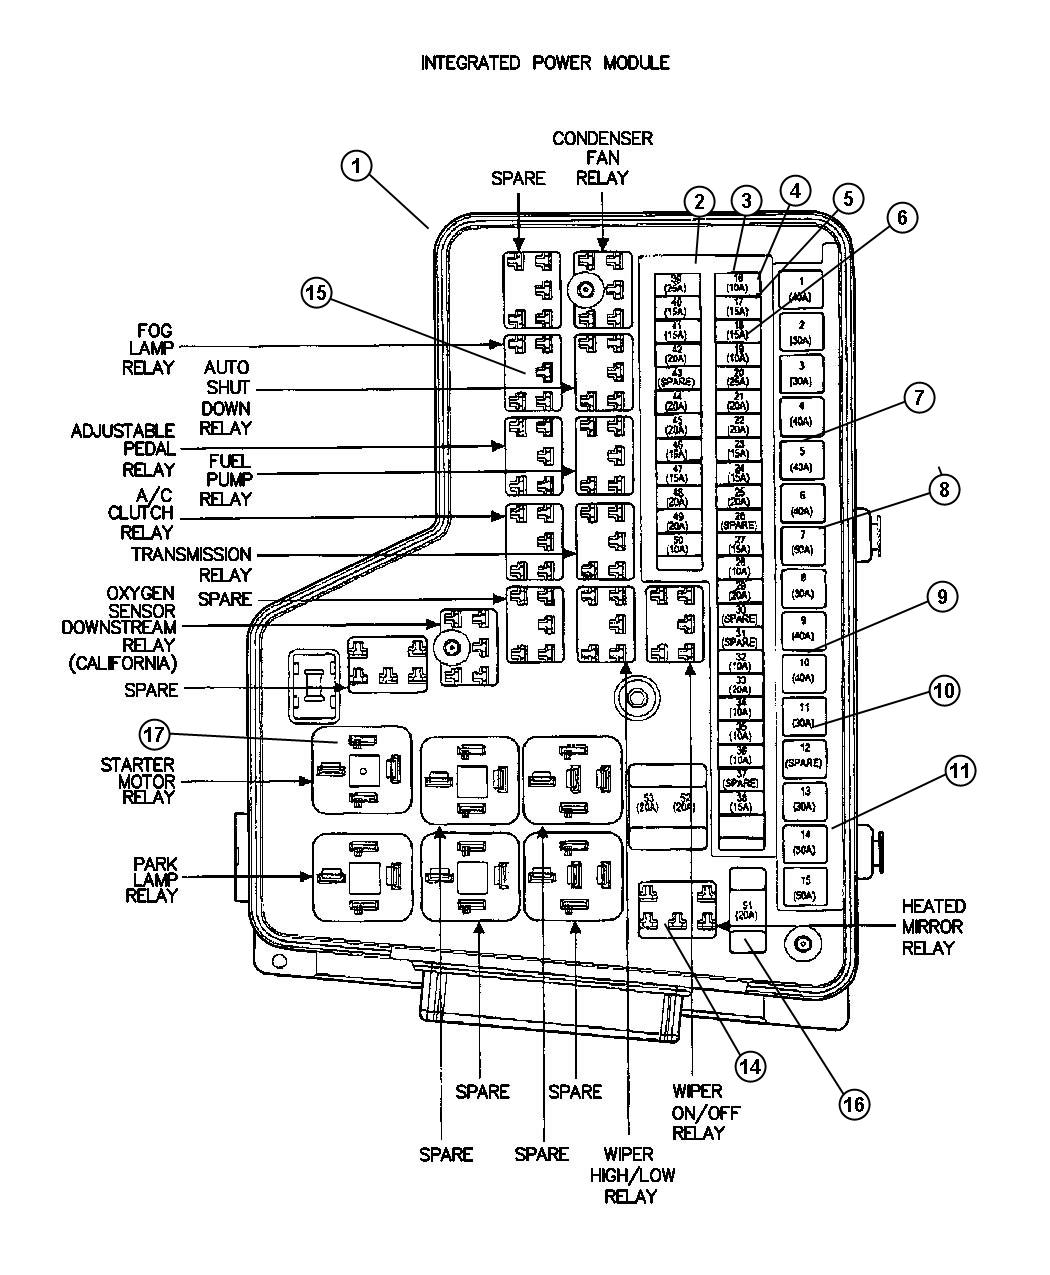 Dodge Ram Cover Totally Integrated Power Module